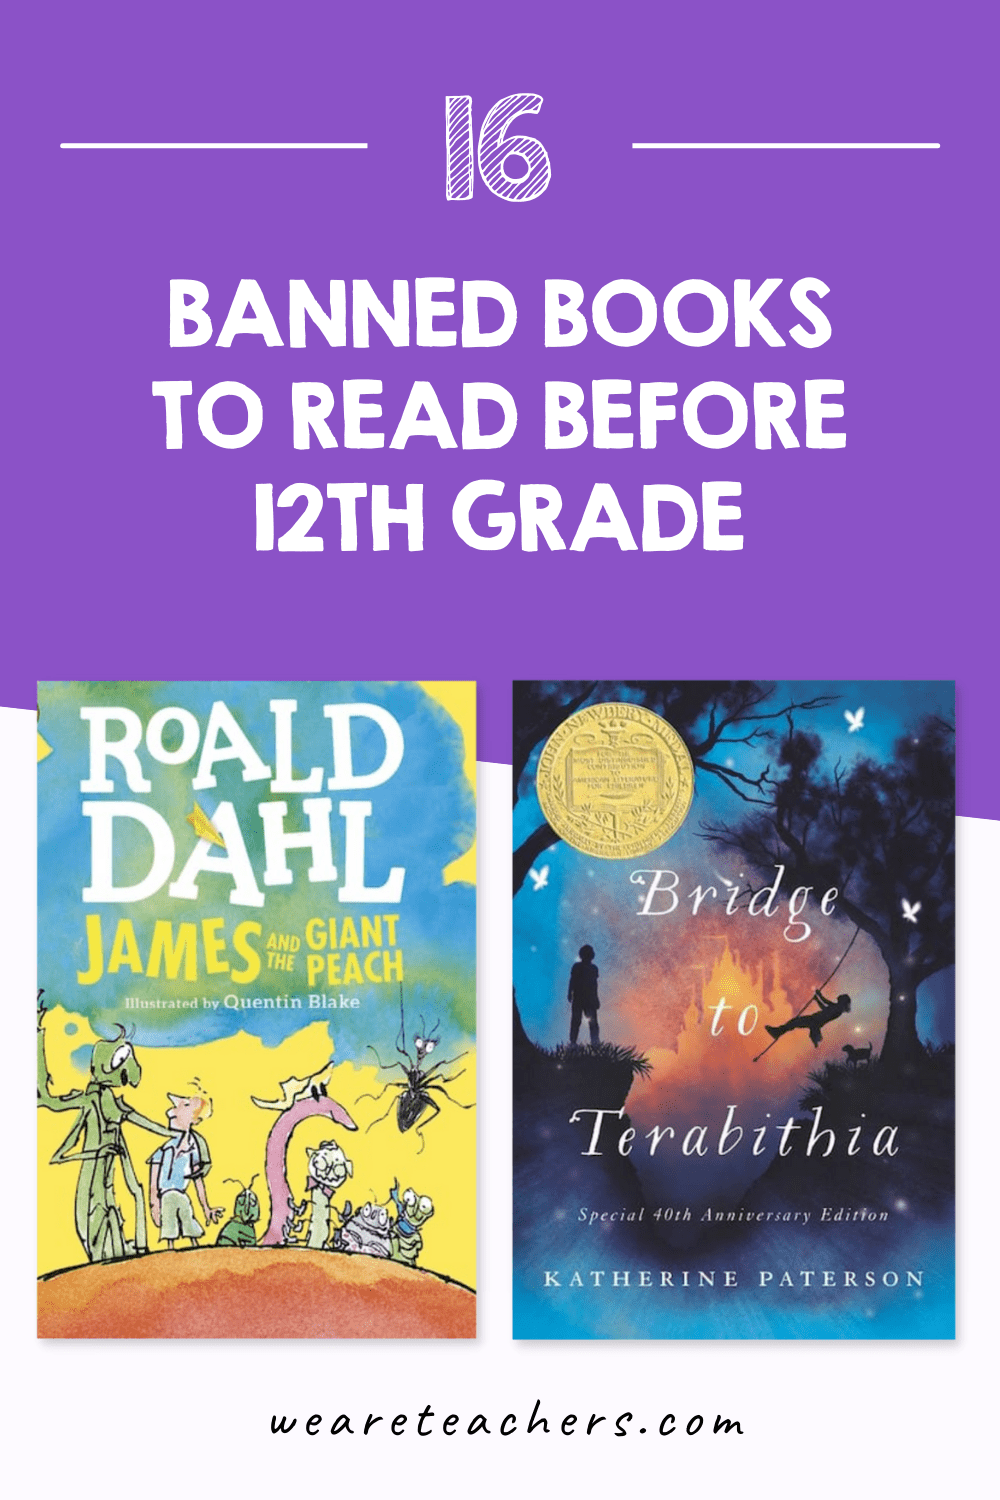 Four best banned books for the classroom.